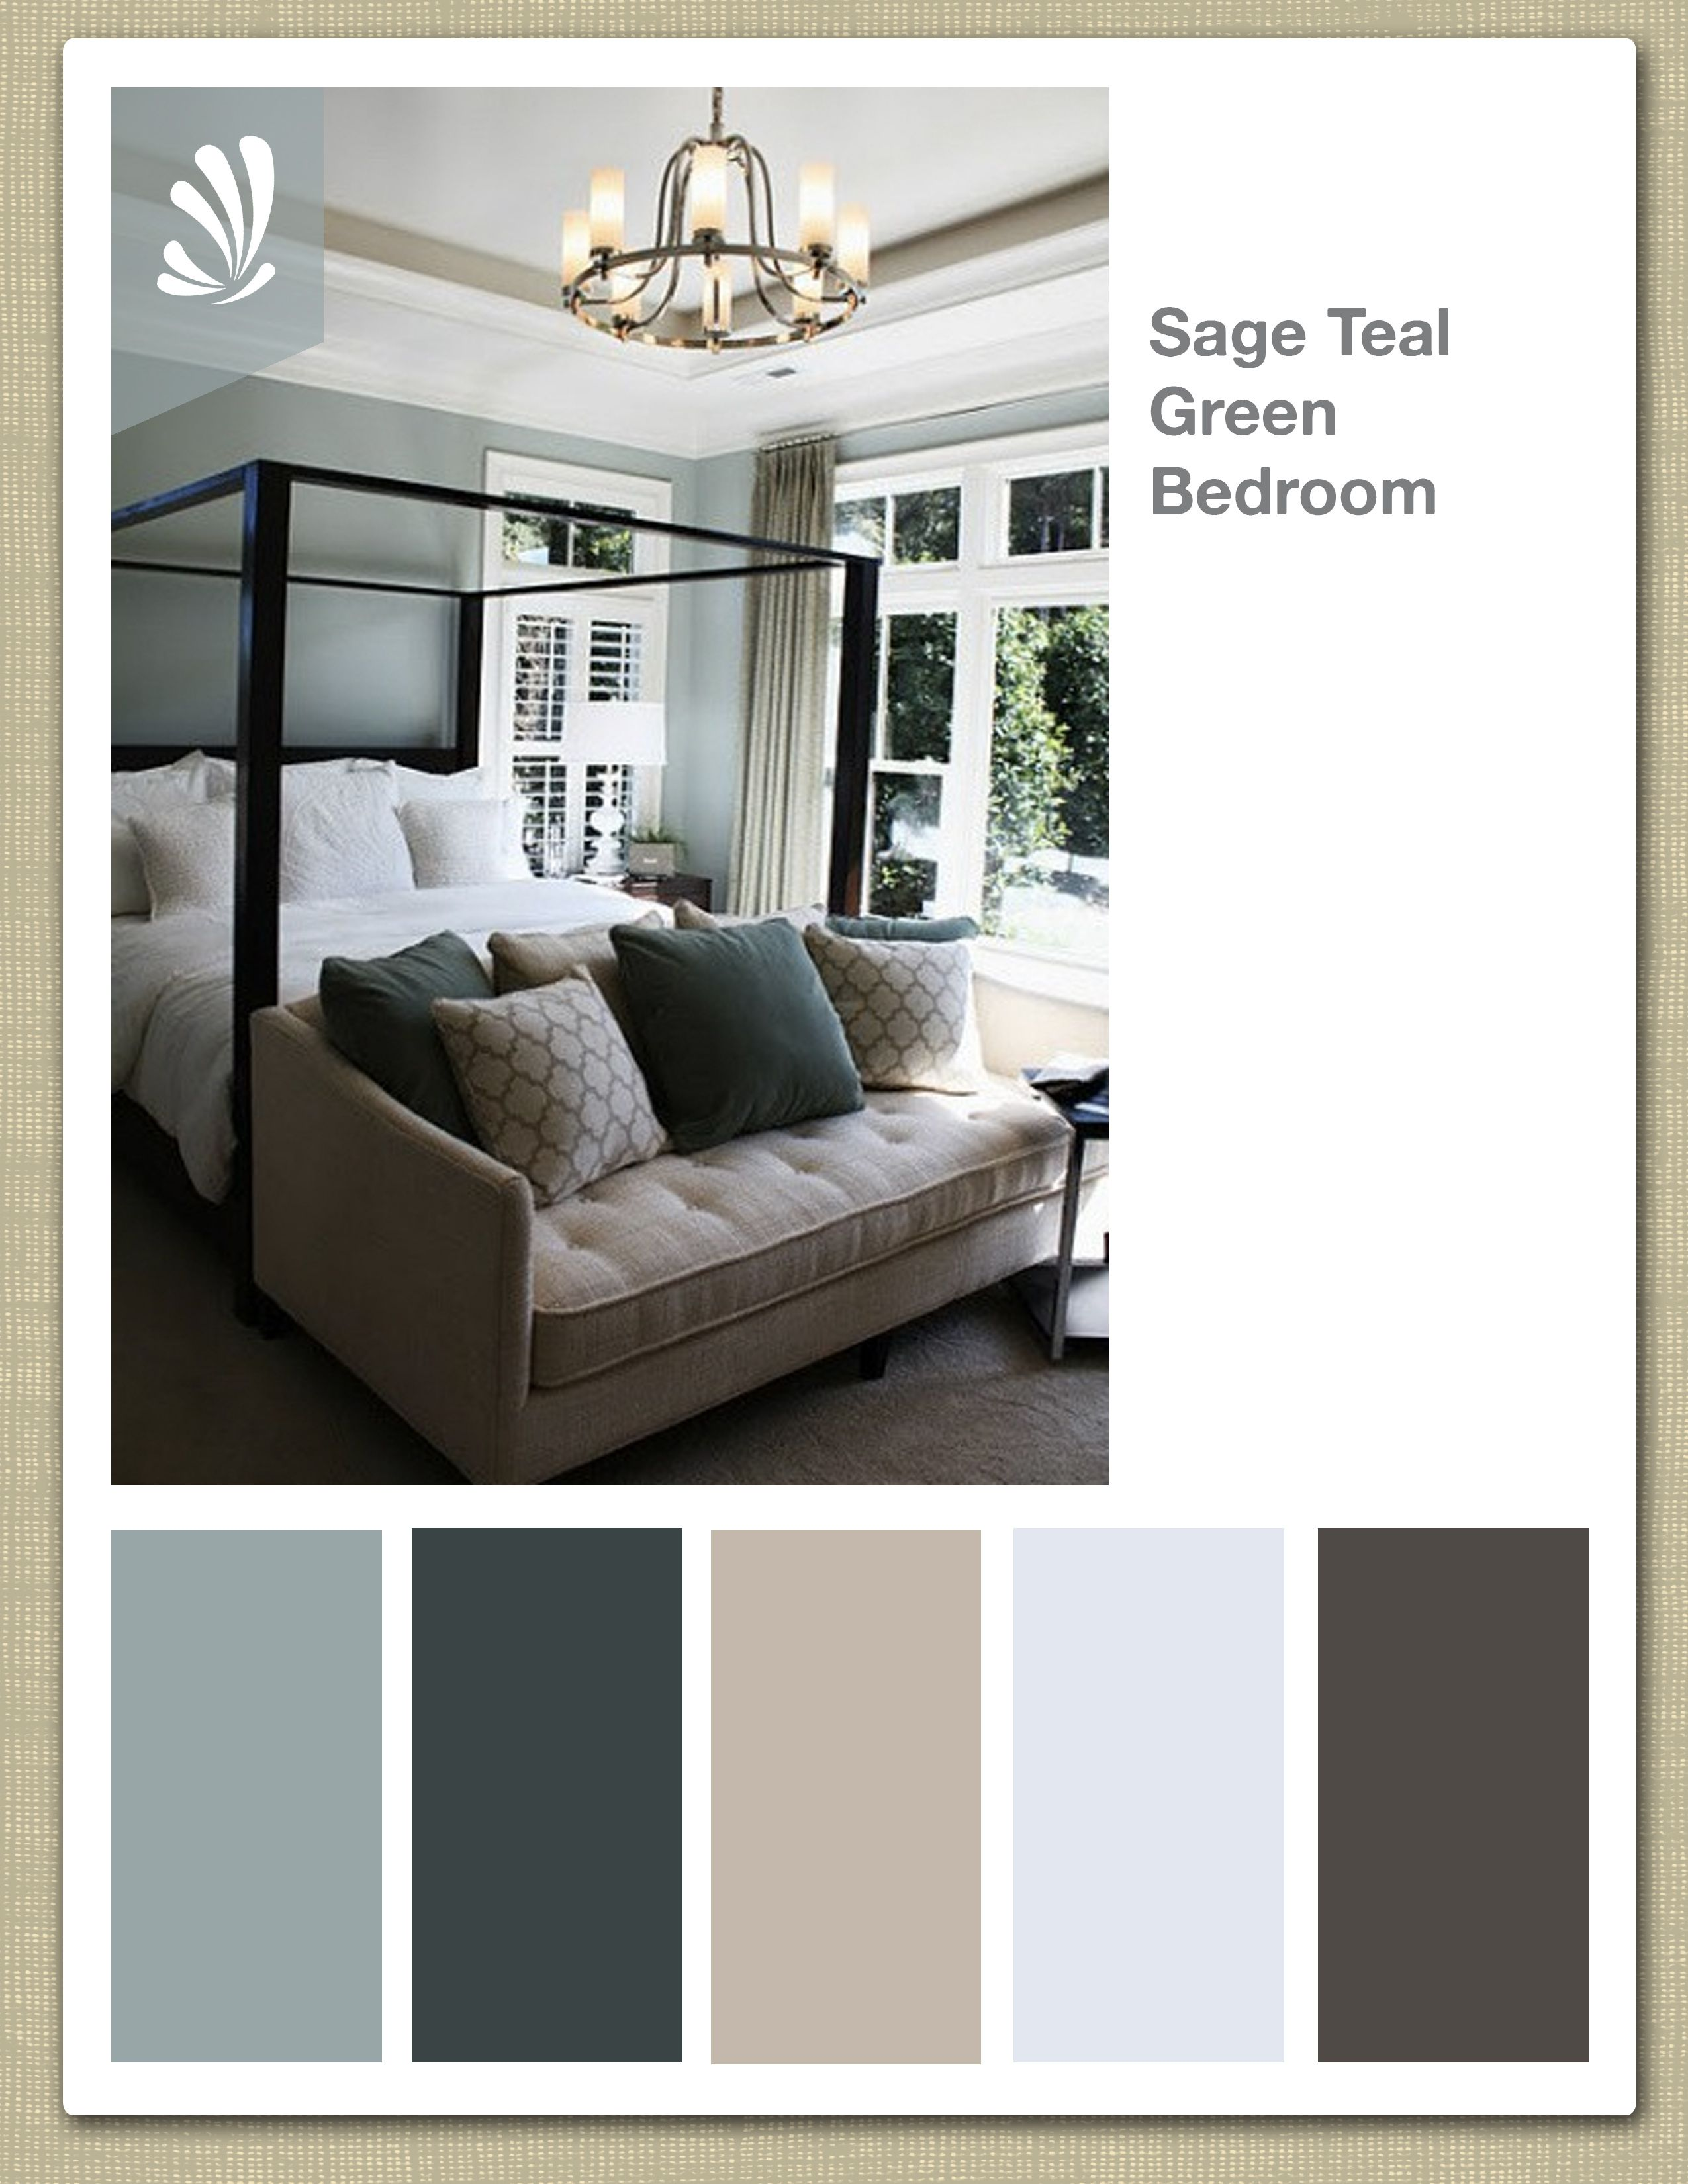 Color Palettes Bedrooms Sage Cream Oil Gray And Teal Green Color Palette